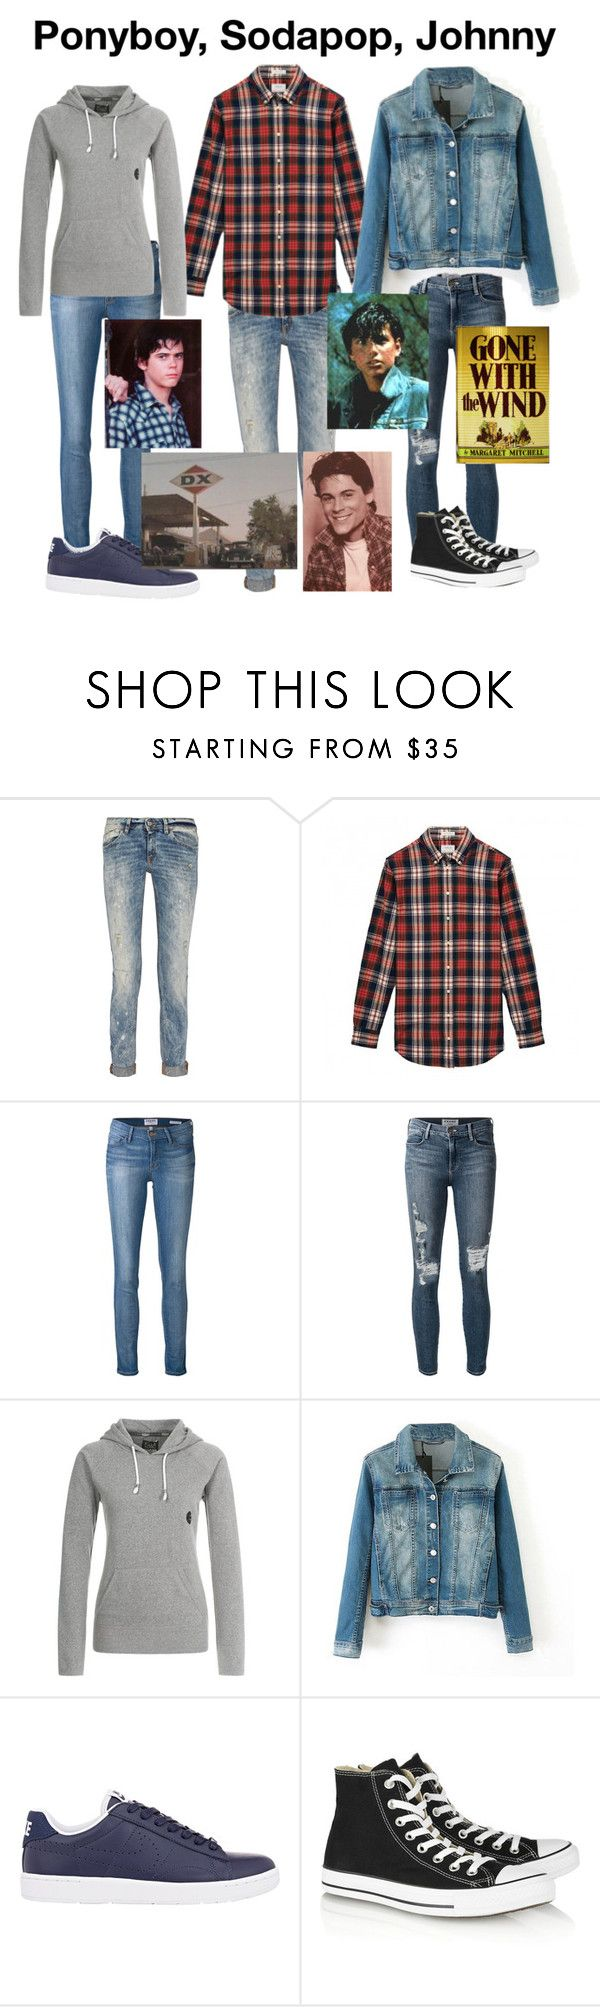 """""""The Outsiders-Ponyboy Curtis, Sodapop Curtis, Johnny Cade"""" by thefeels1456 ❤ liked on Polyvore featuring Just Cavalli, Frame Denim, Billabong, NIKE, Converse, women's clothing, women, female, woman and misses"""